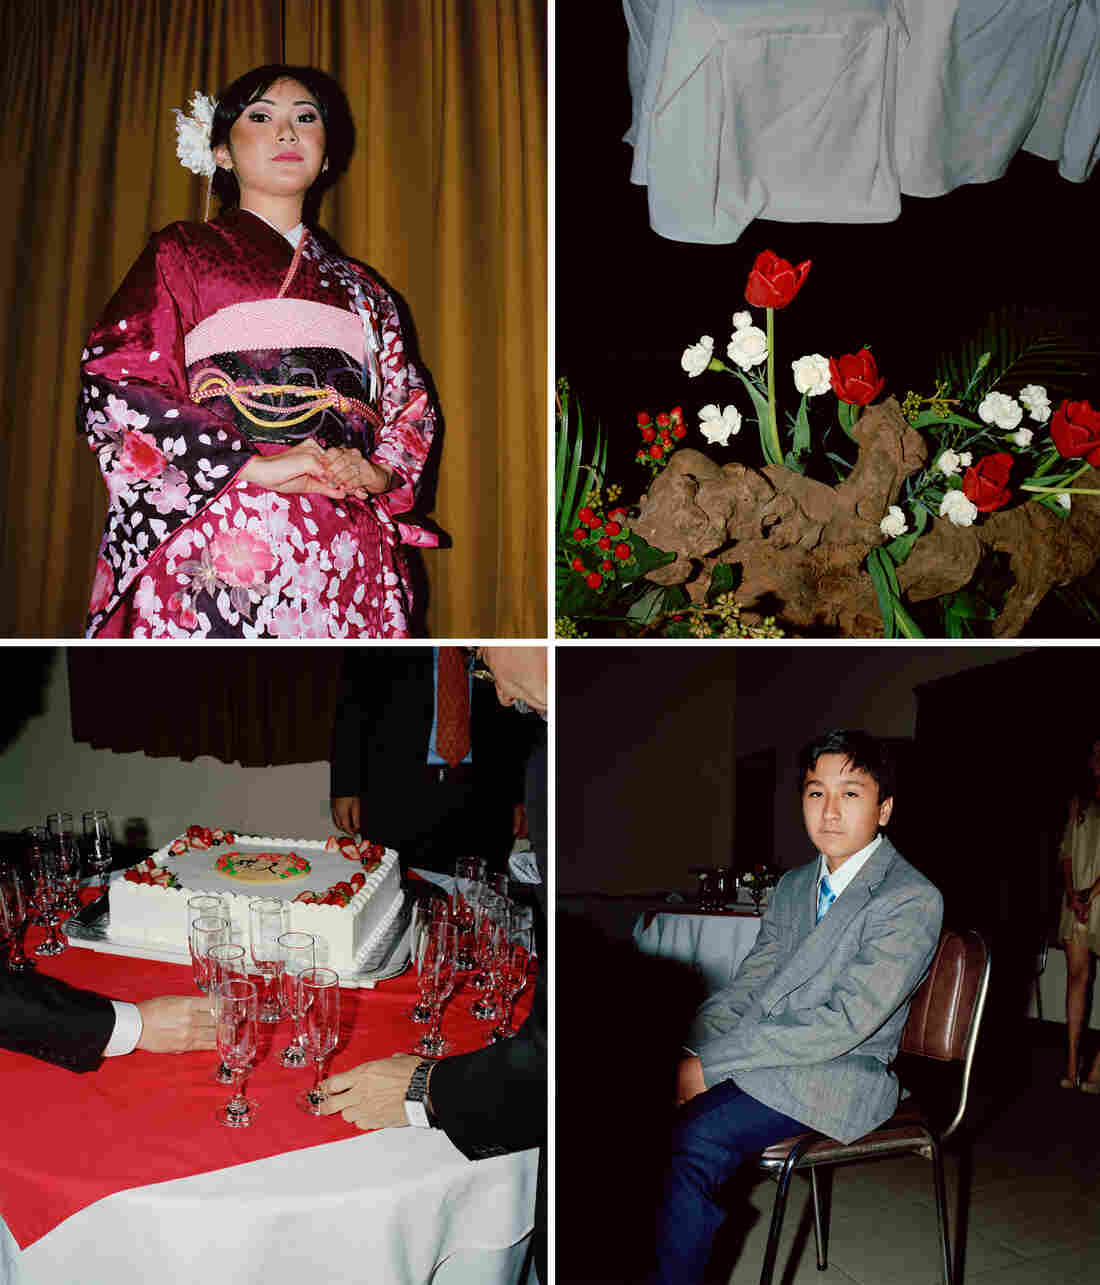 Clockwise from top left: A woman wears a pink kimono. Red and white flowers are an ikebana arrangement. A teenage boy sits at a formal party. Men gather champagne flutes next to a white cake.